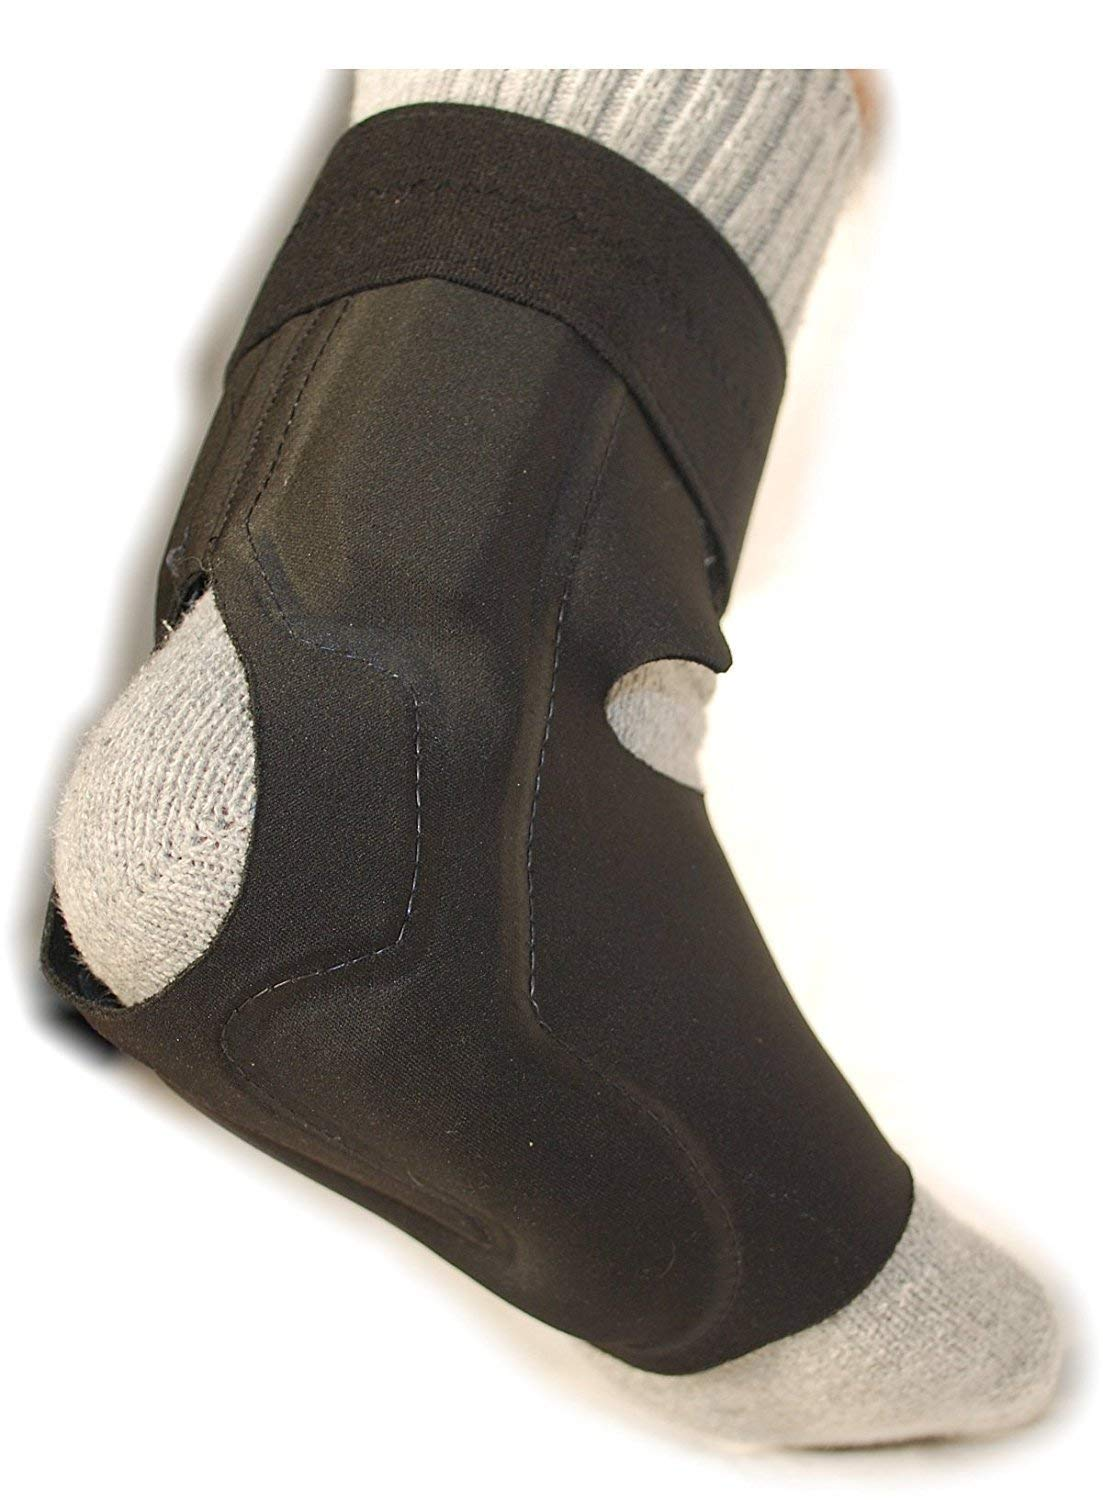 Ortho Heal Pneumatic Daytime Brace for Plantar Fasciitis, Heel Pain Relief, and Achilles Tendonitis Support Medium  B00O80312C